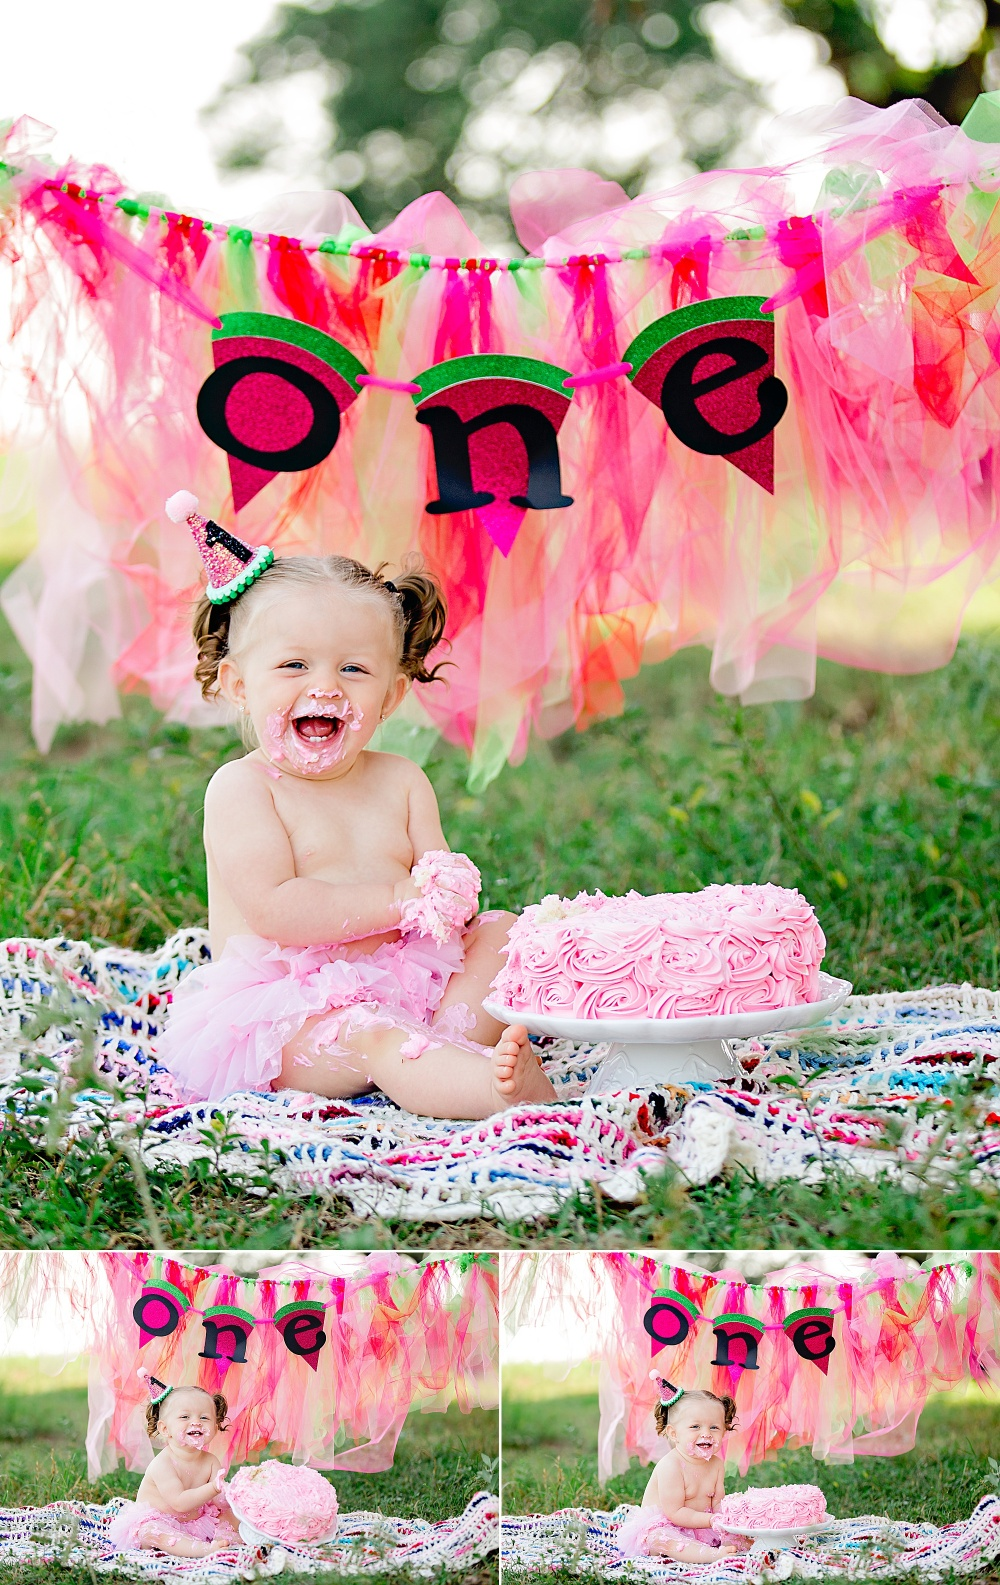 Family-photographer-Cake-Smash-one-year-birthday-pink-theme-carly-barton-photography_0003.jpg